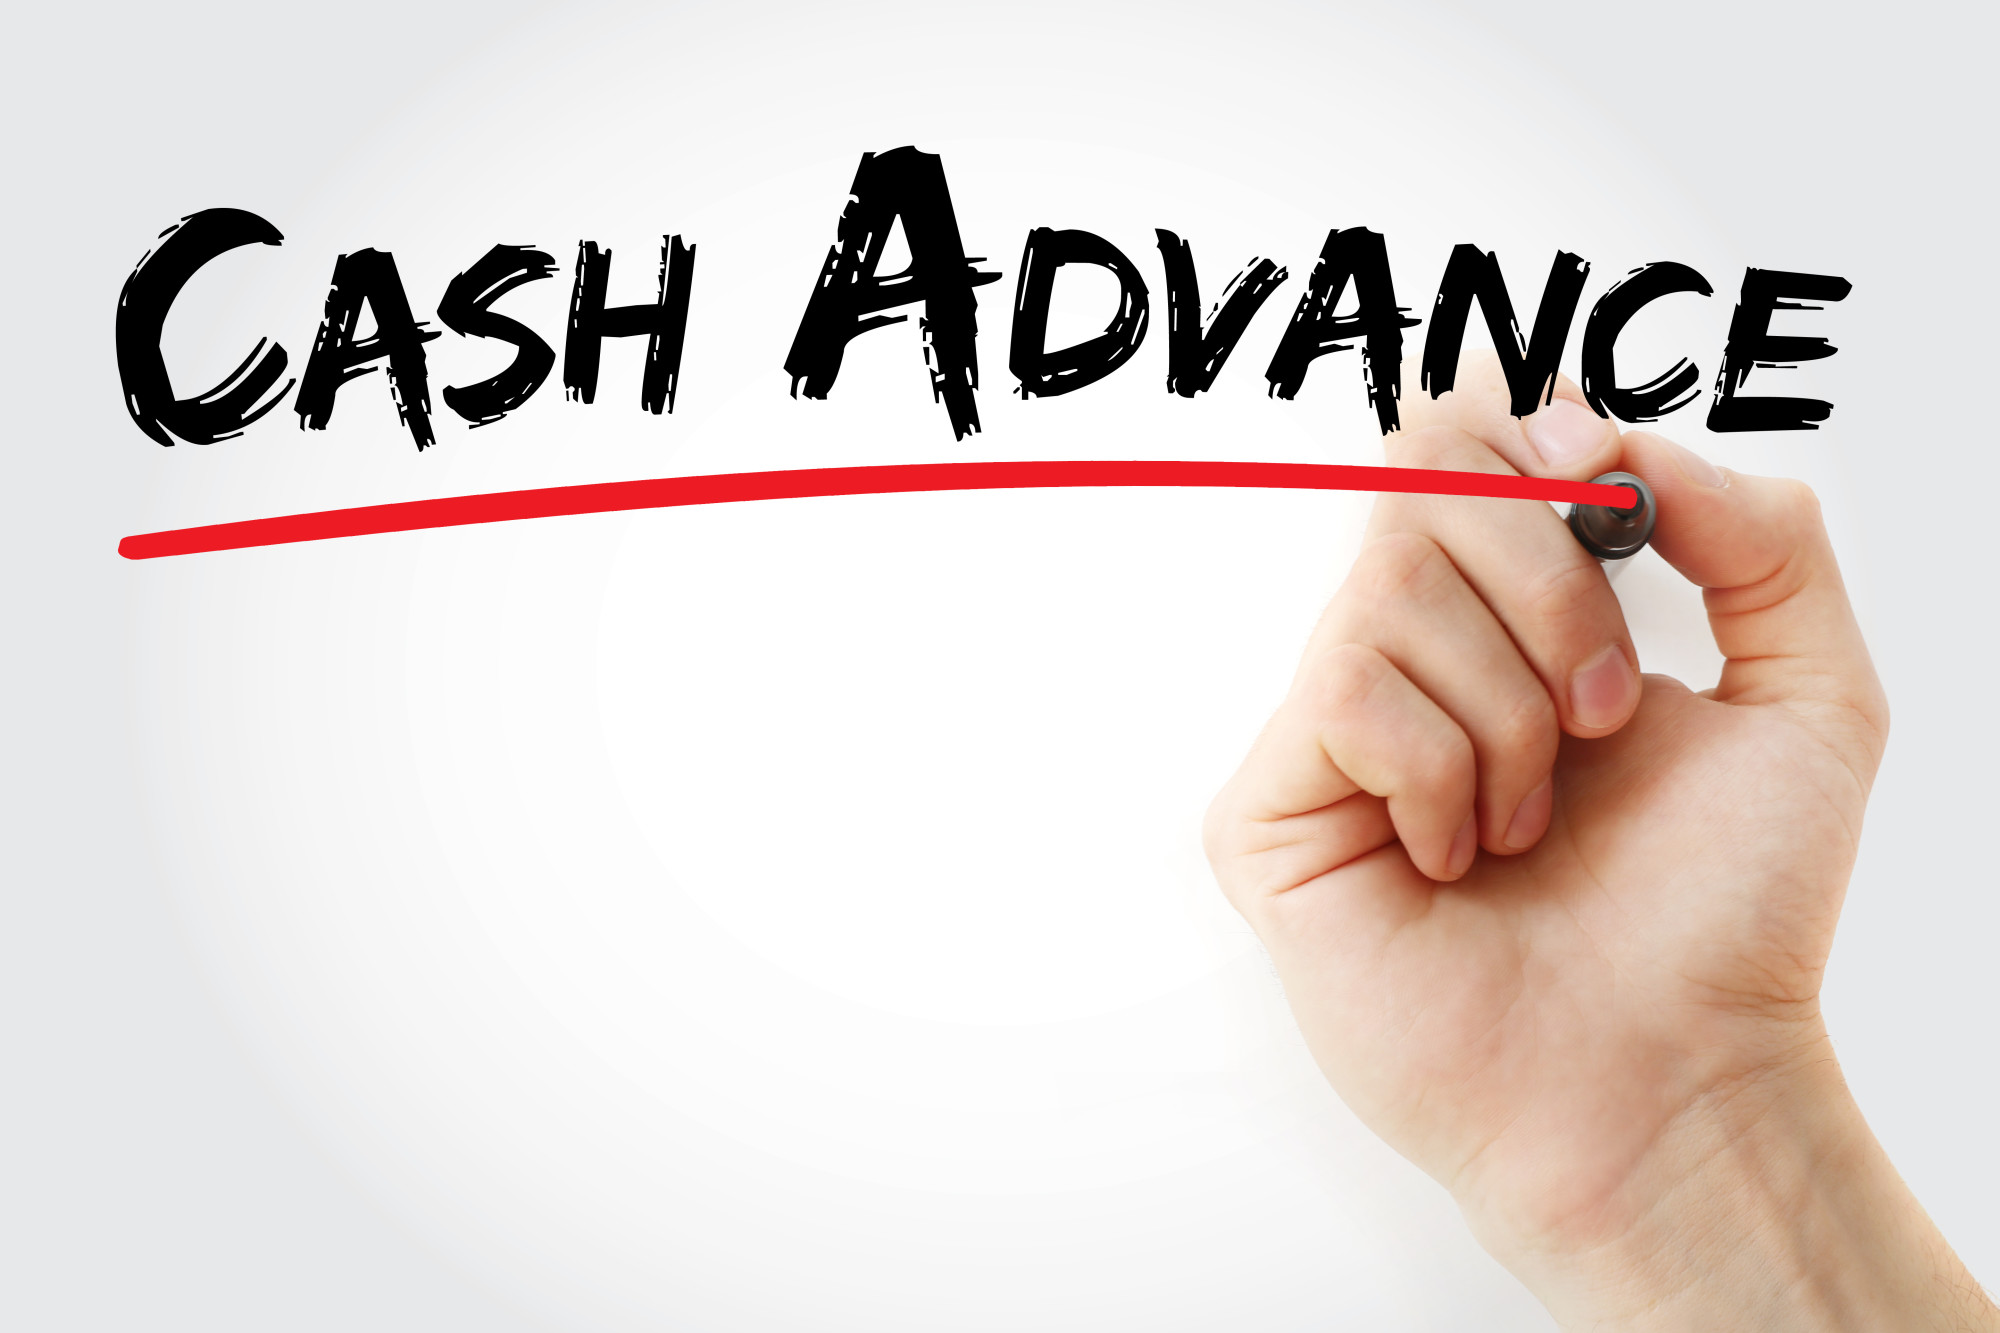 cash advance text